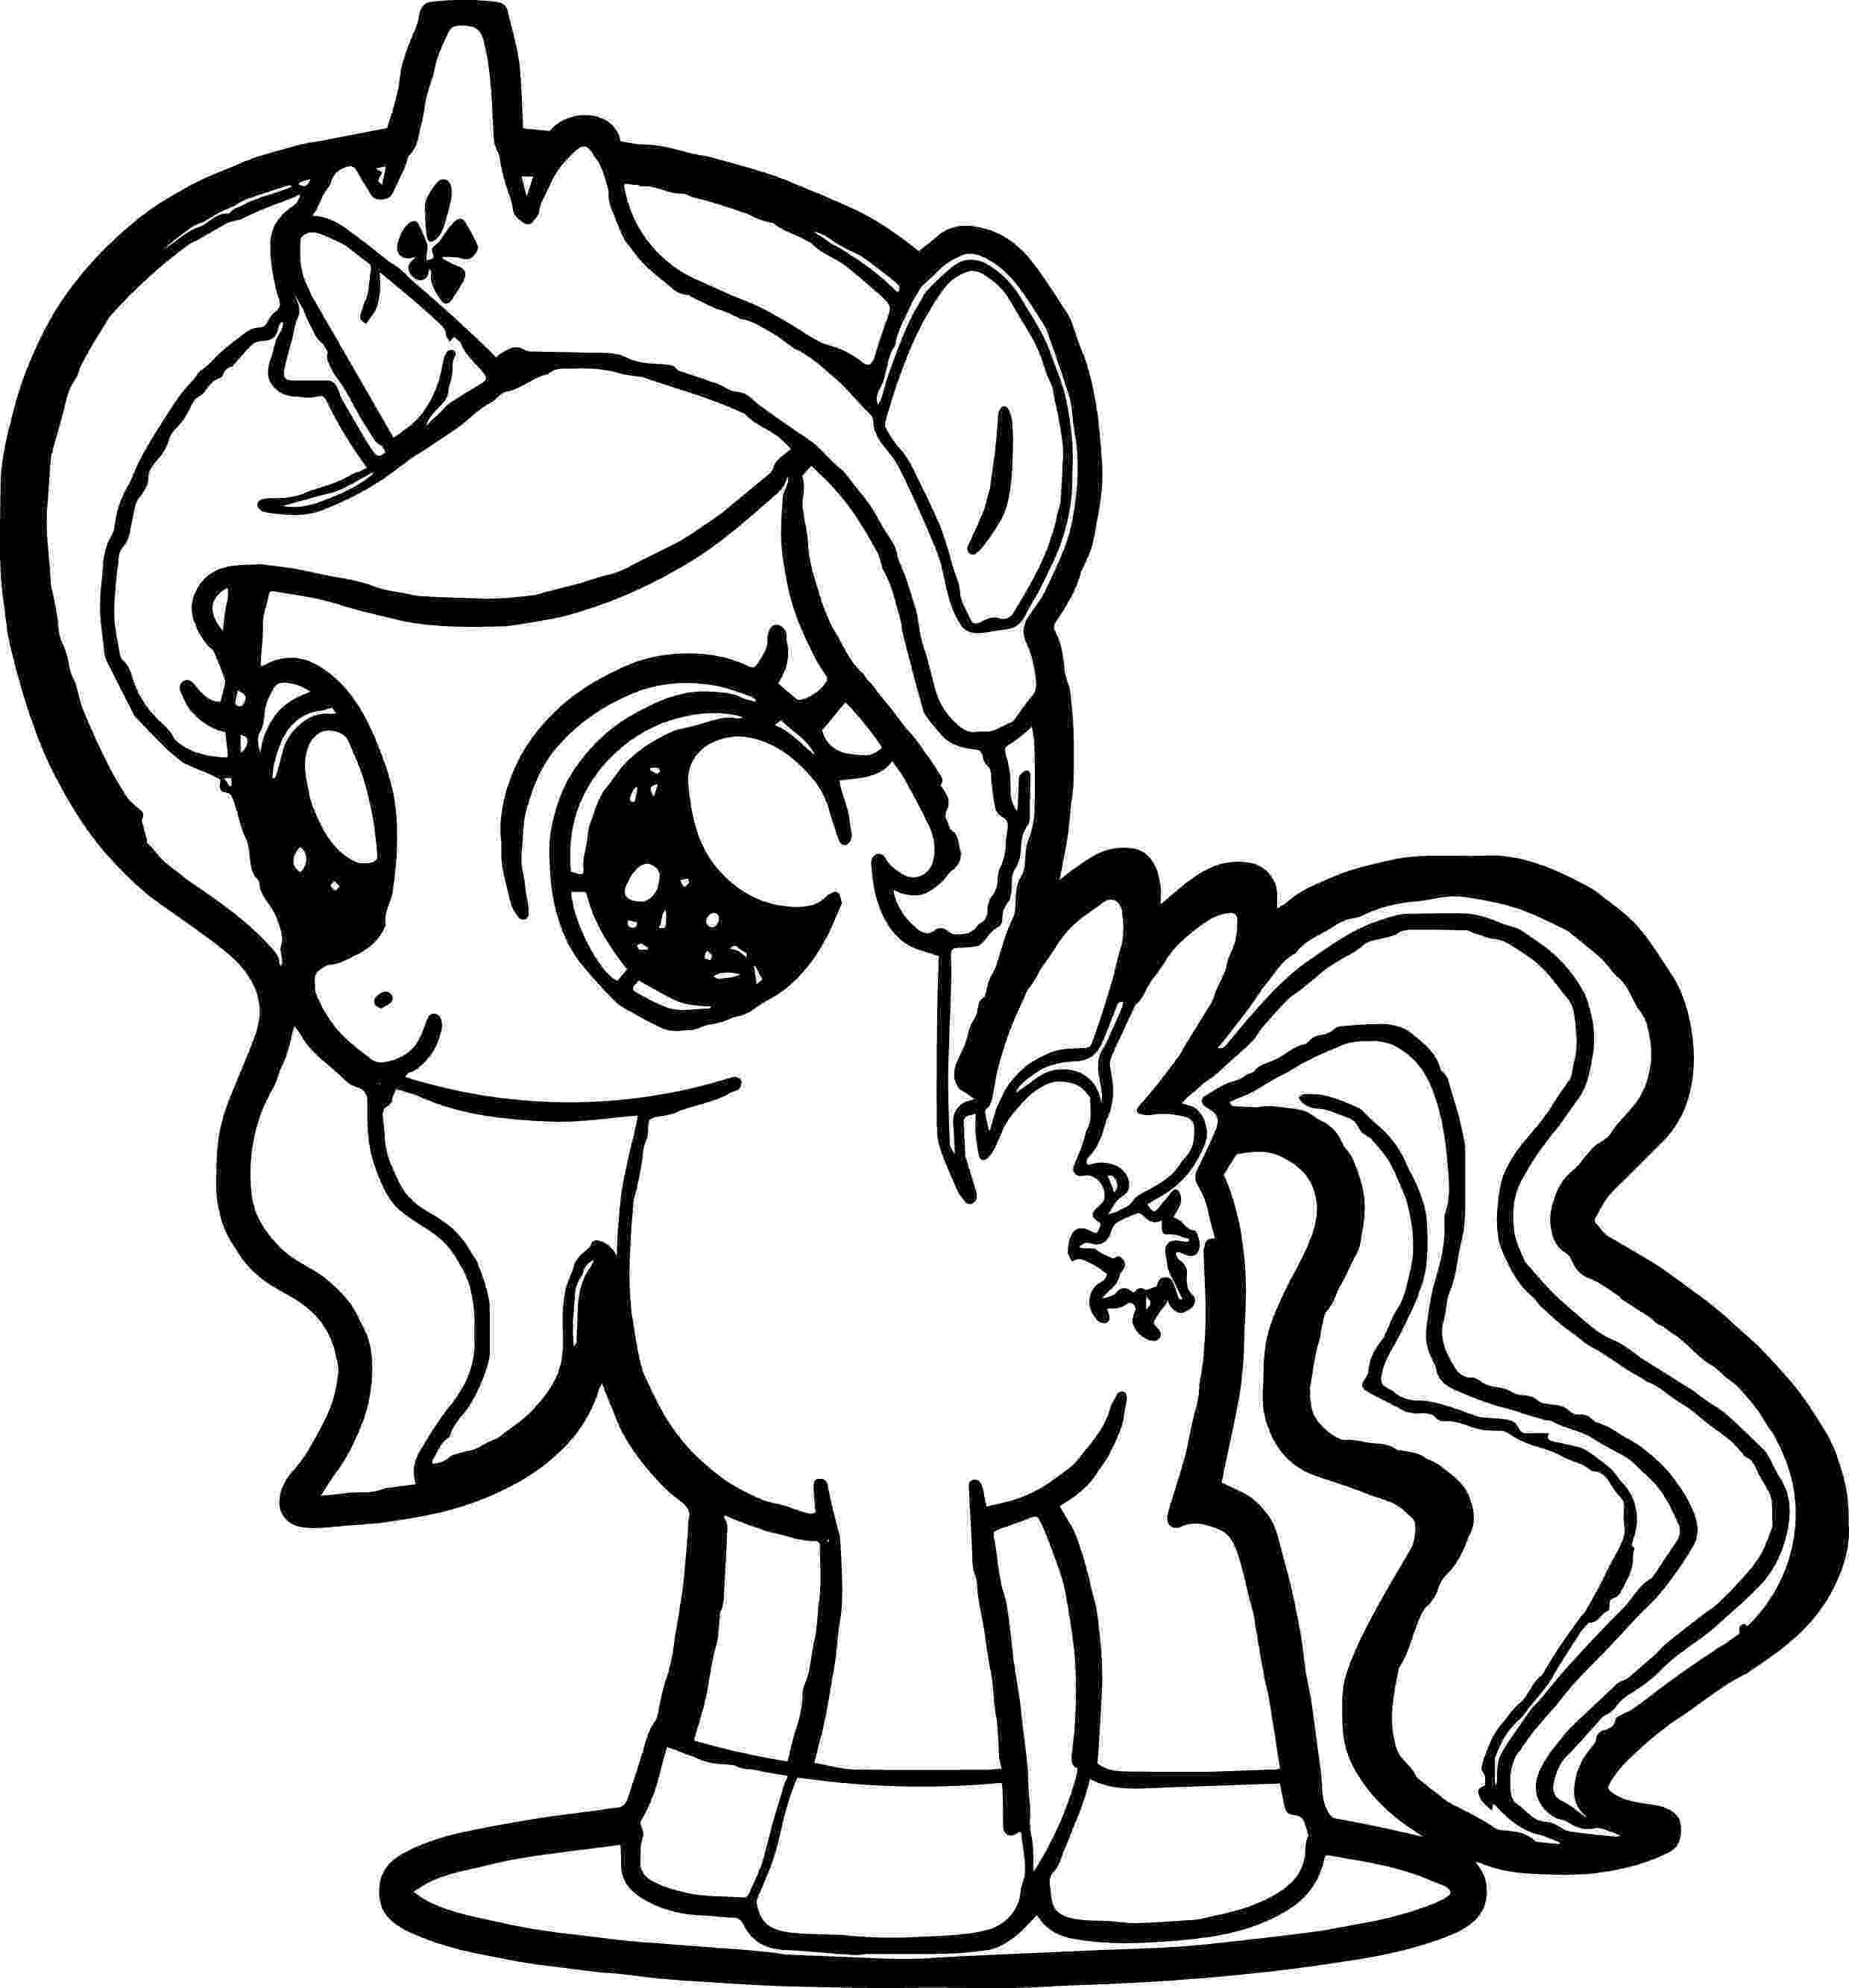 my little pony for coloring cute pony coloring page wecoloringpagecom my pony coloring for little